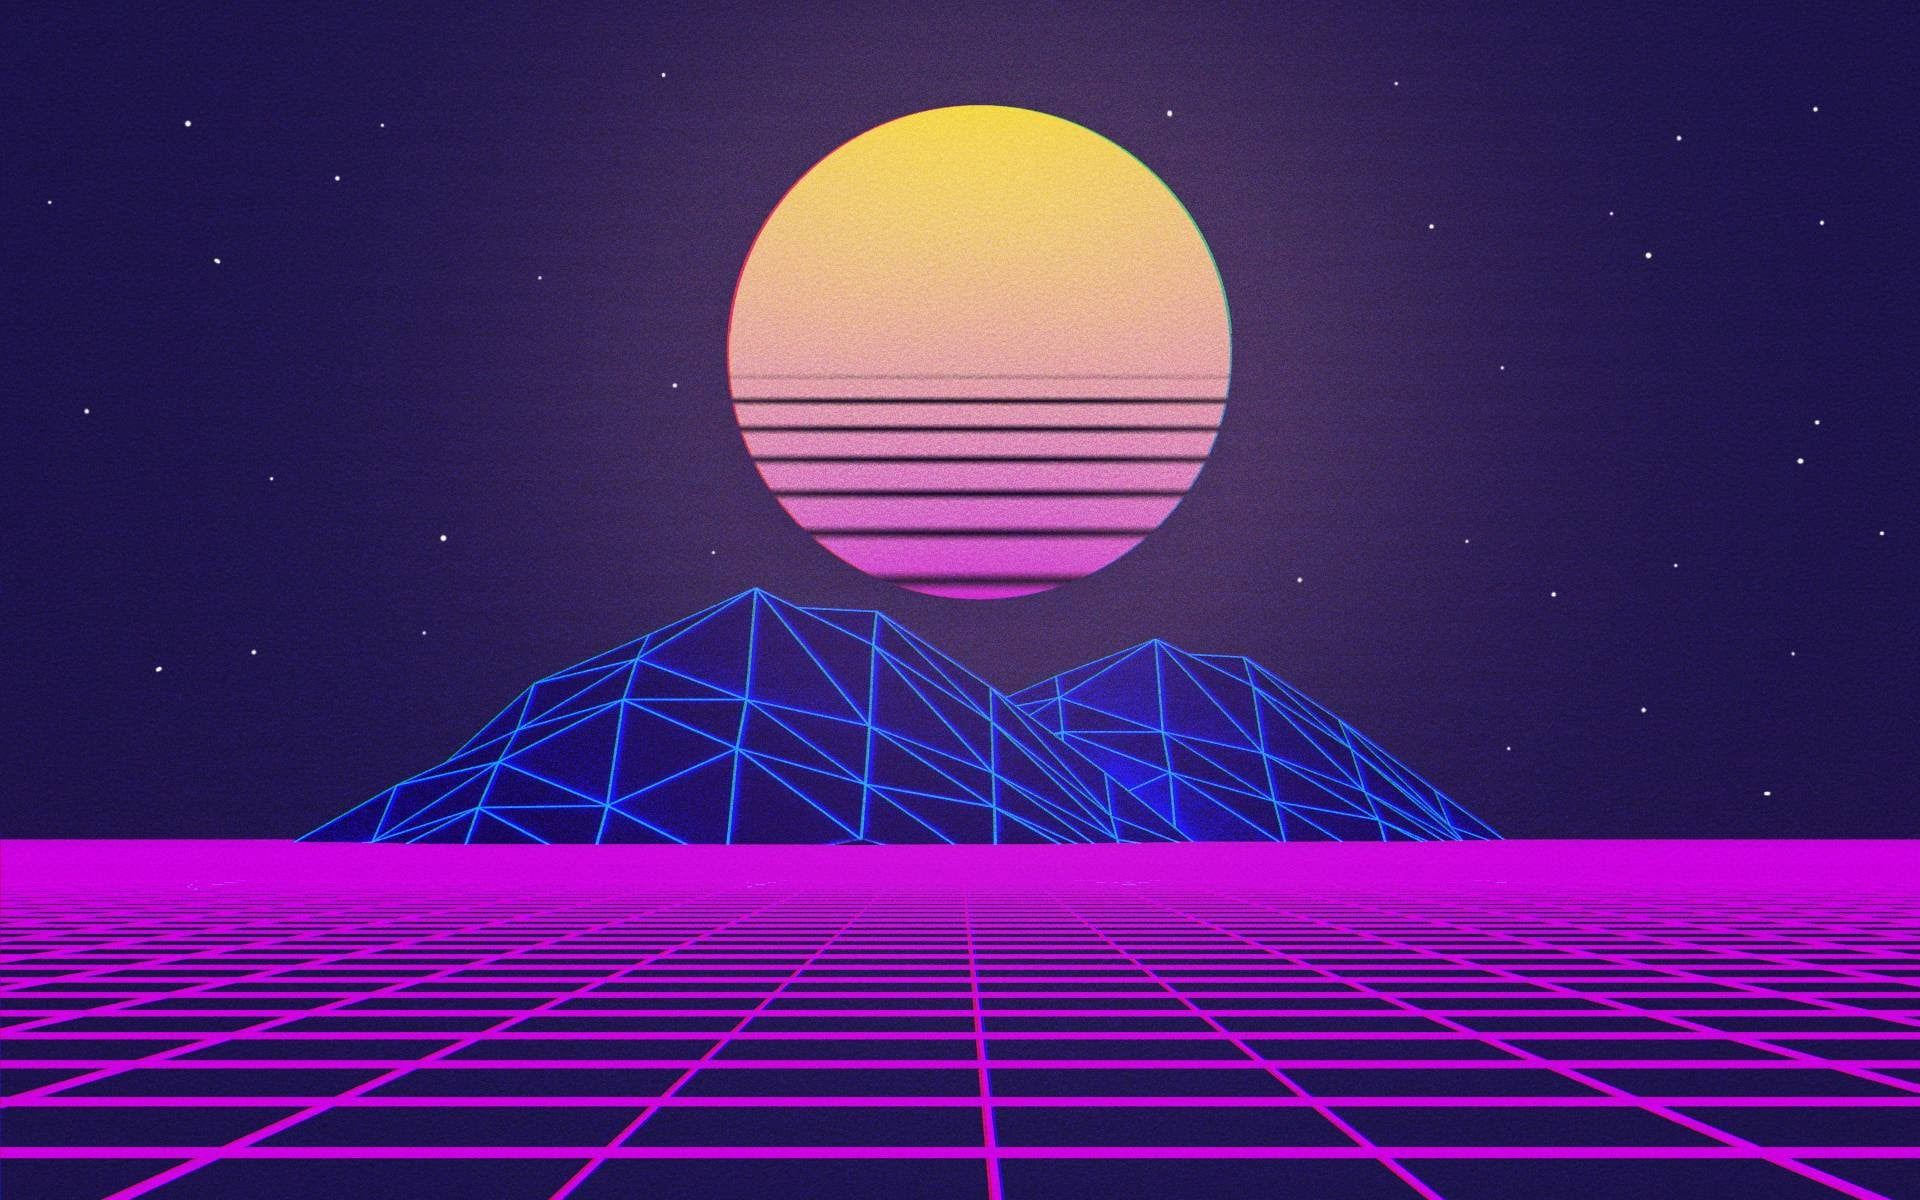 Blue Hill And Yellow Moon Digital Illustration Vaporwave Grid